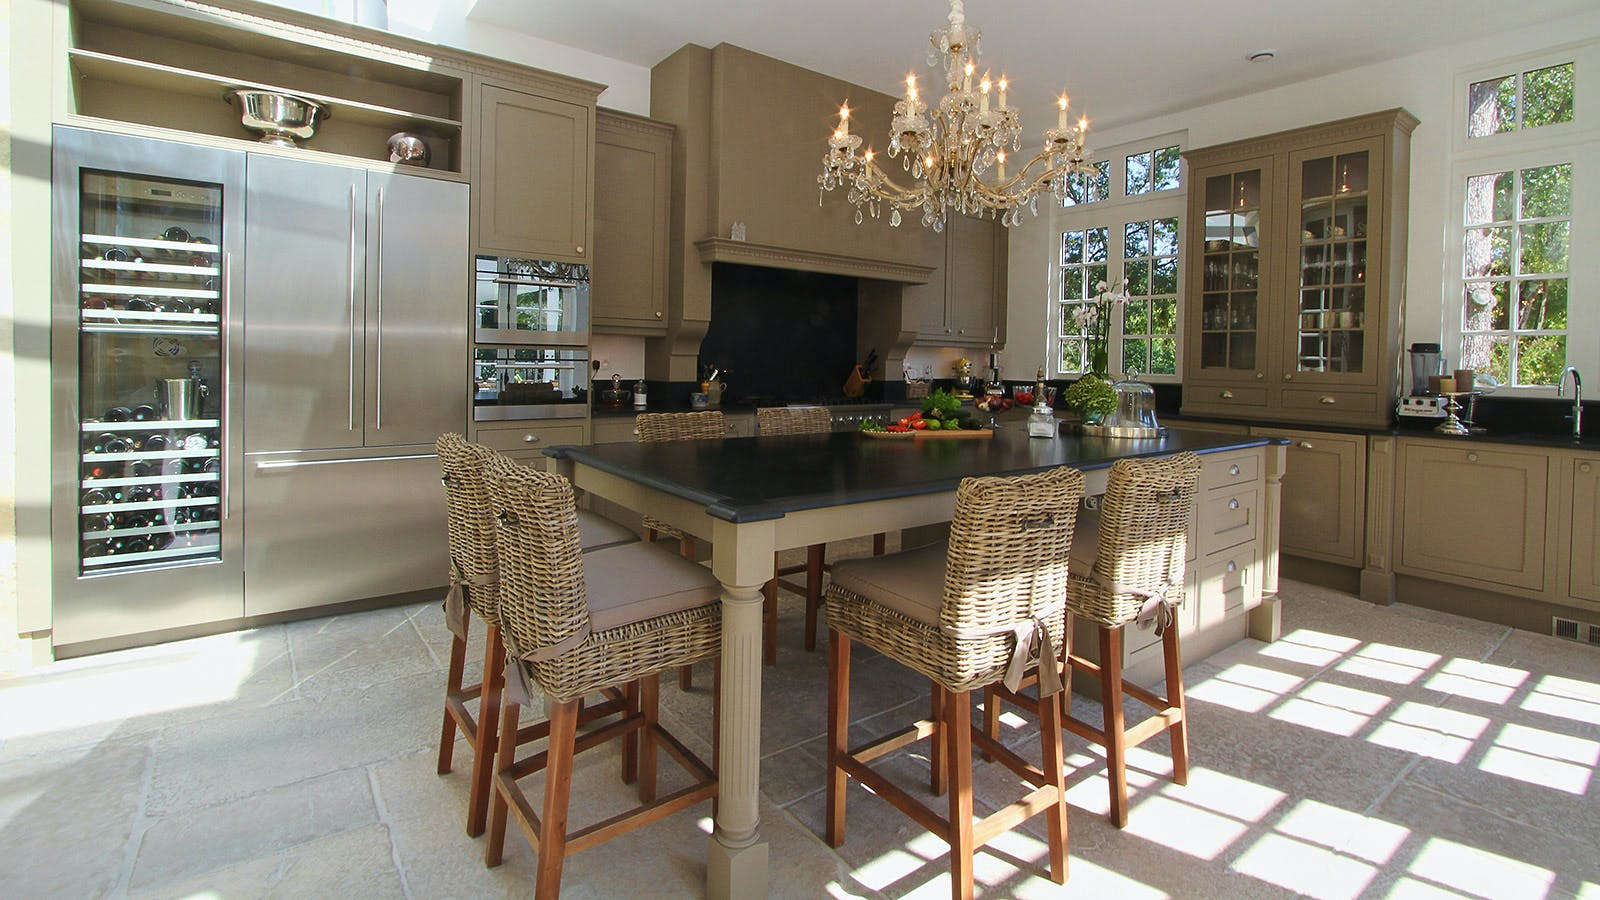 B&q Kitchen Design Jobs At Home In An 18th Century Bordeaux Château Wine Spectator